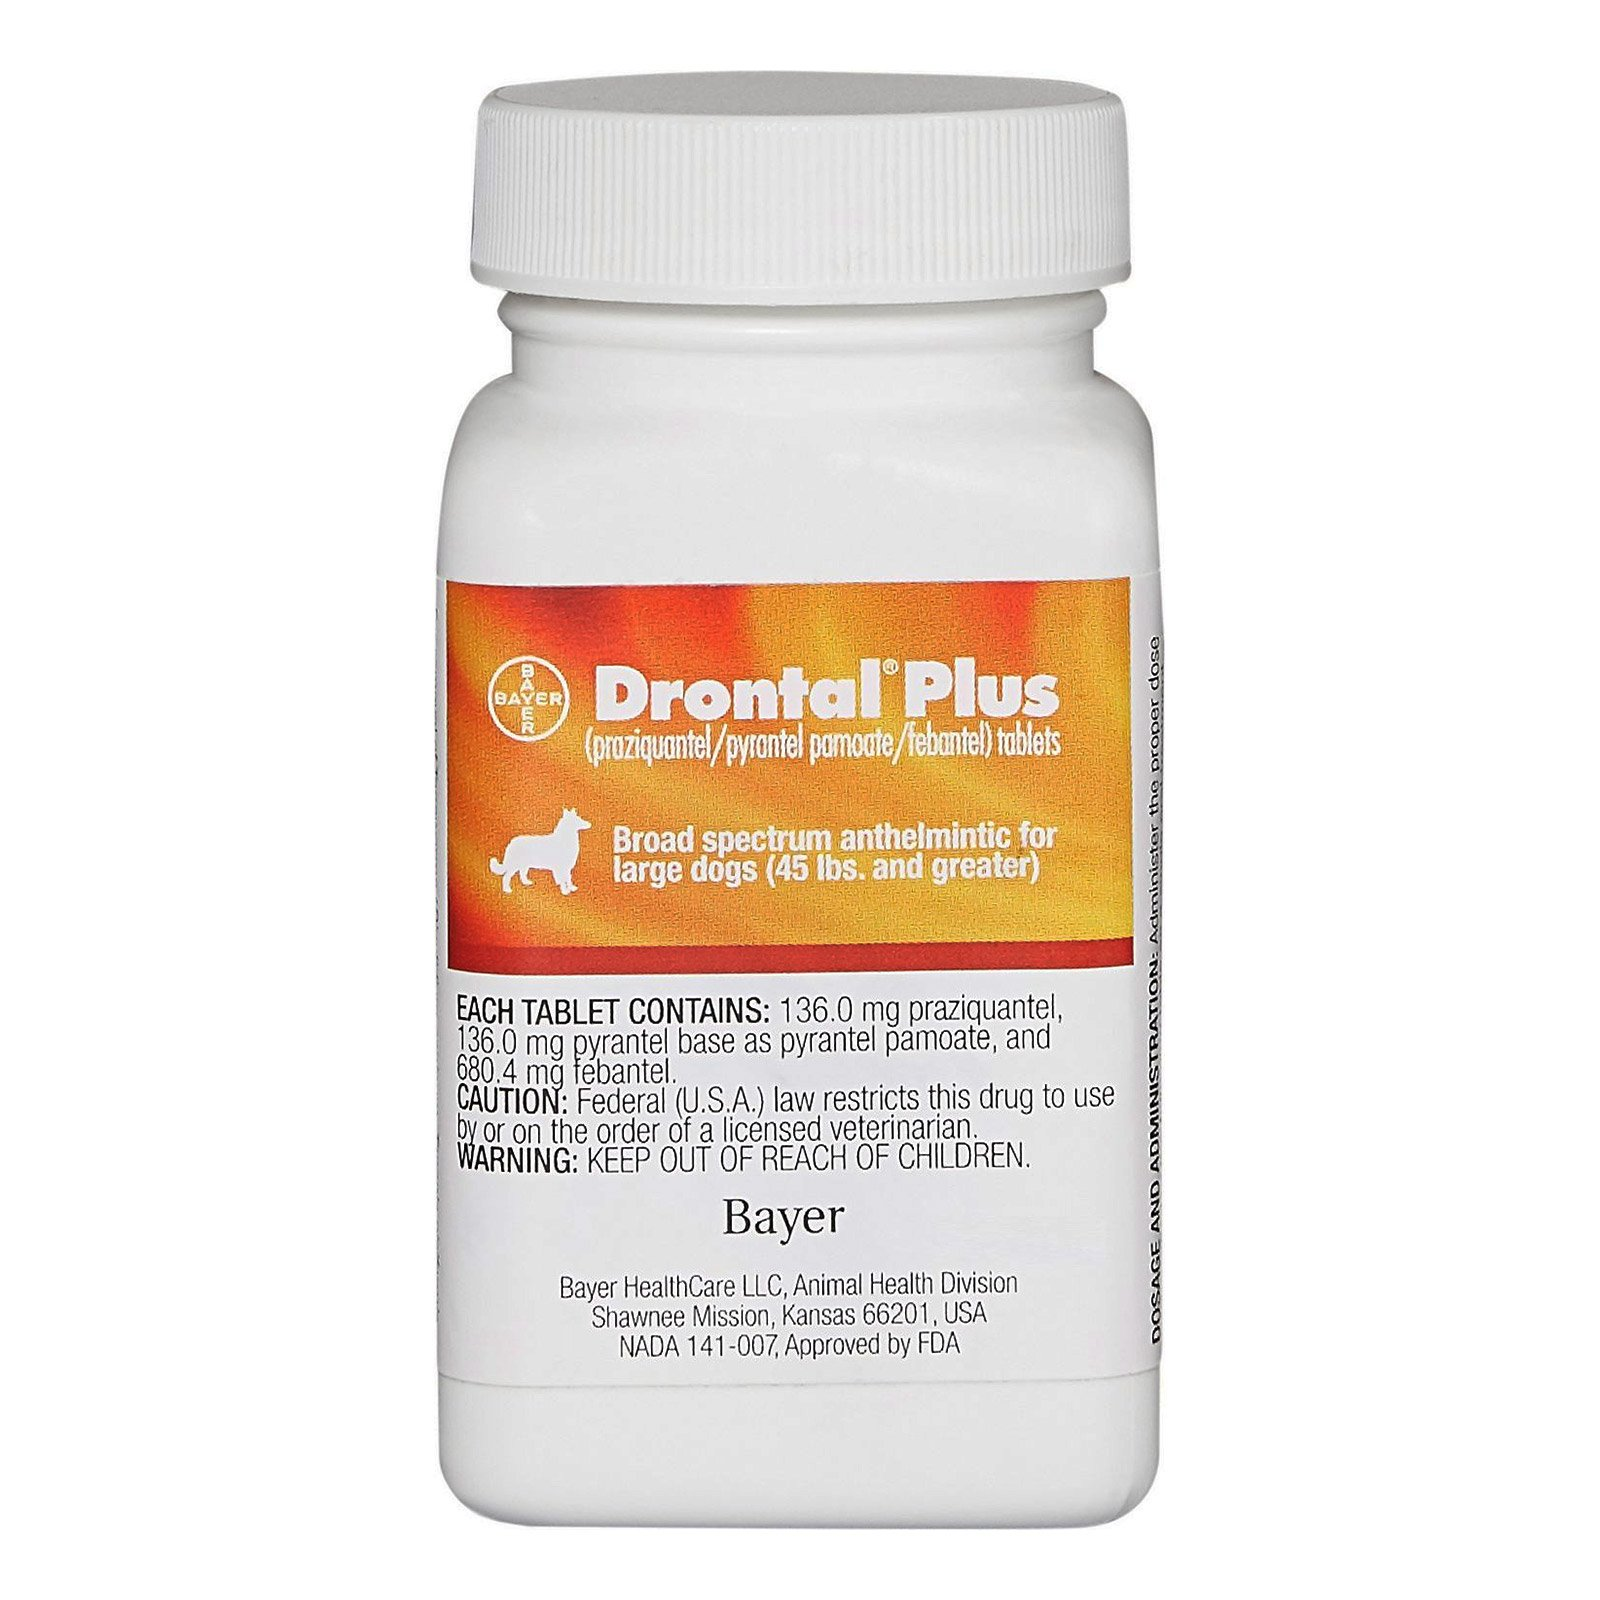 Drontal for Dog Supplies